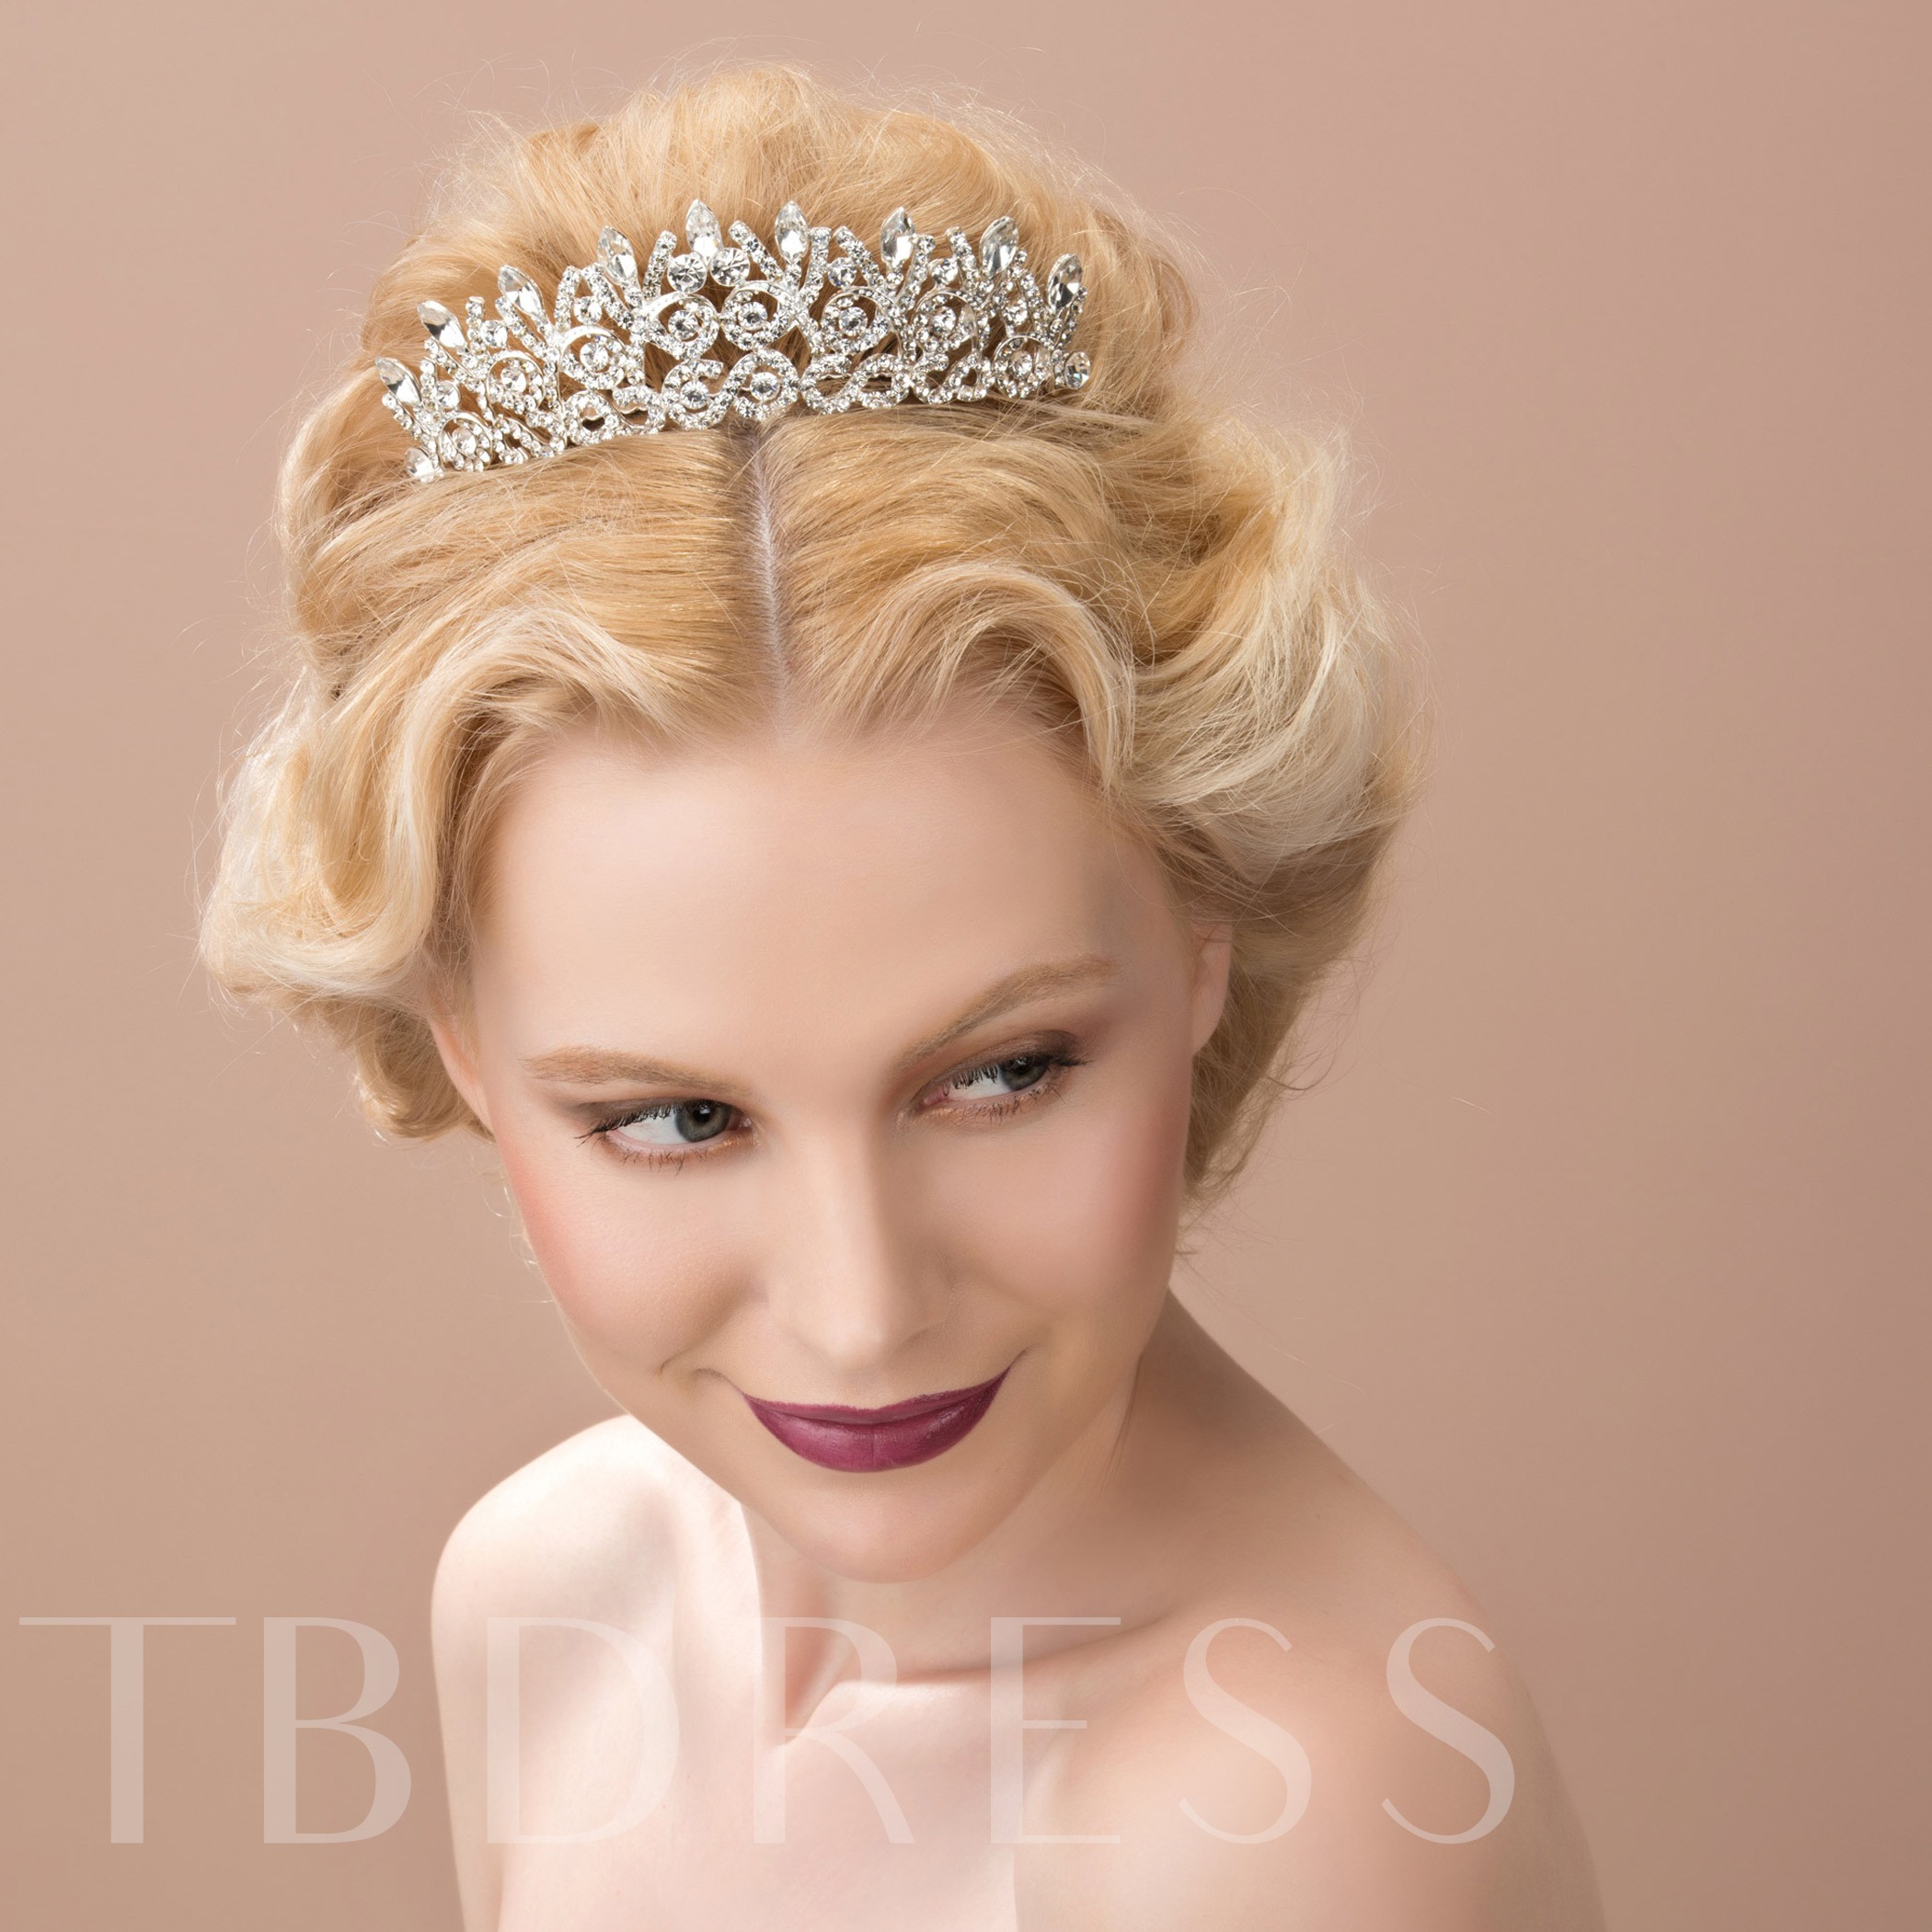 Celebrity Alloy with Rhinestone Bridal Wedding Tiara